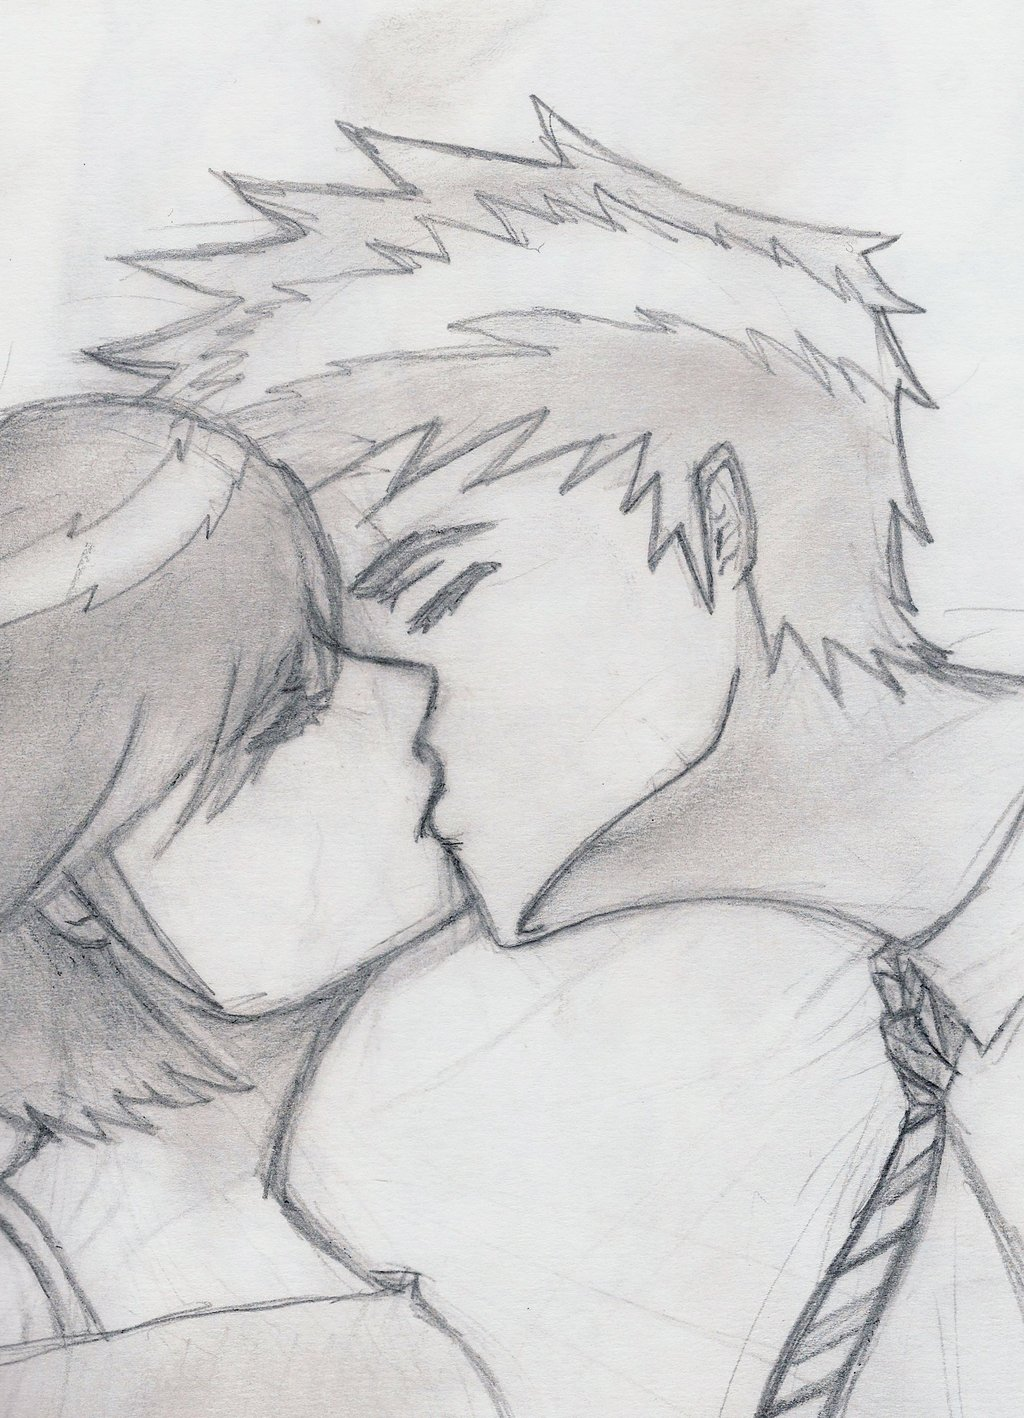 Drawn kiss anime How Manga By Collection To